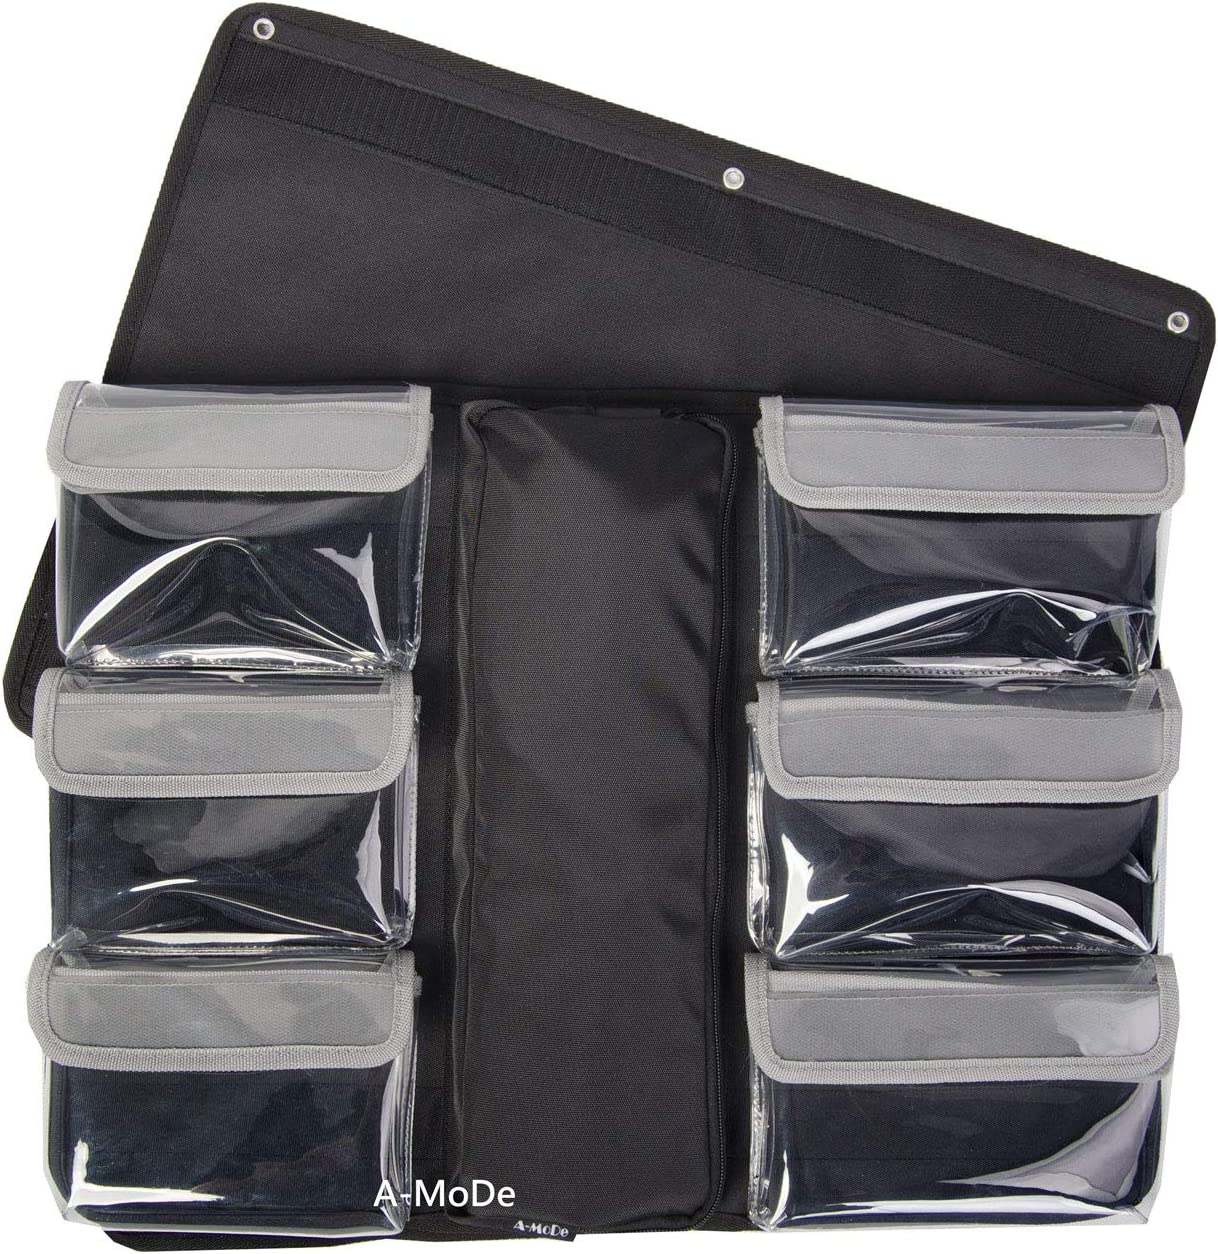 No Case 1560setA LID1560 Lid Organizer equiv Fits Pelican 1560 A-Mode IN1560A Padded Dividers